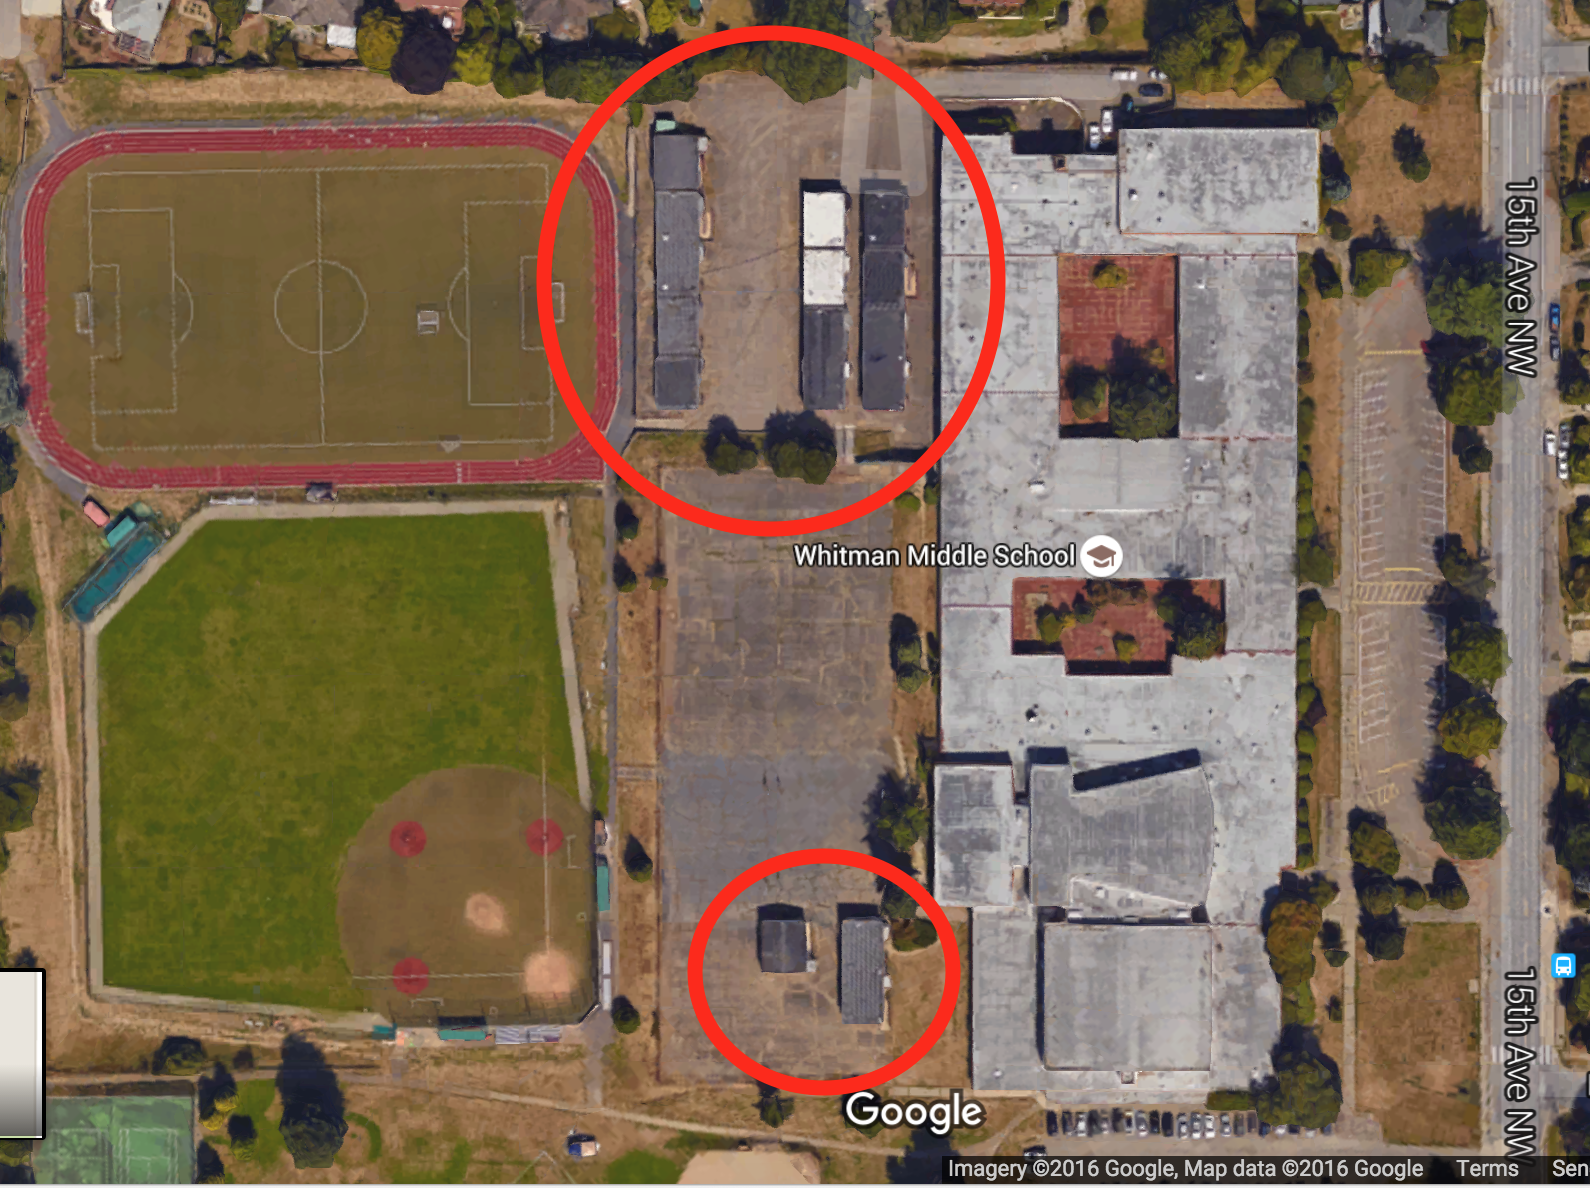 Whitman Middle School Portables Screen Shot 2016-06-14 at 8.47.04 PM